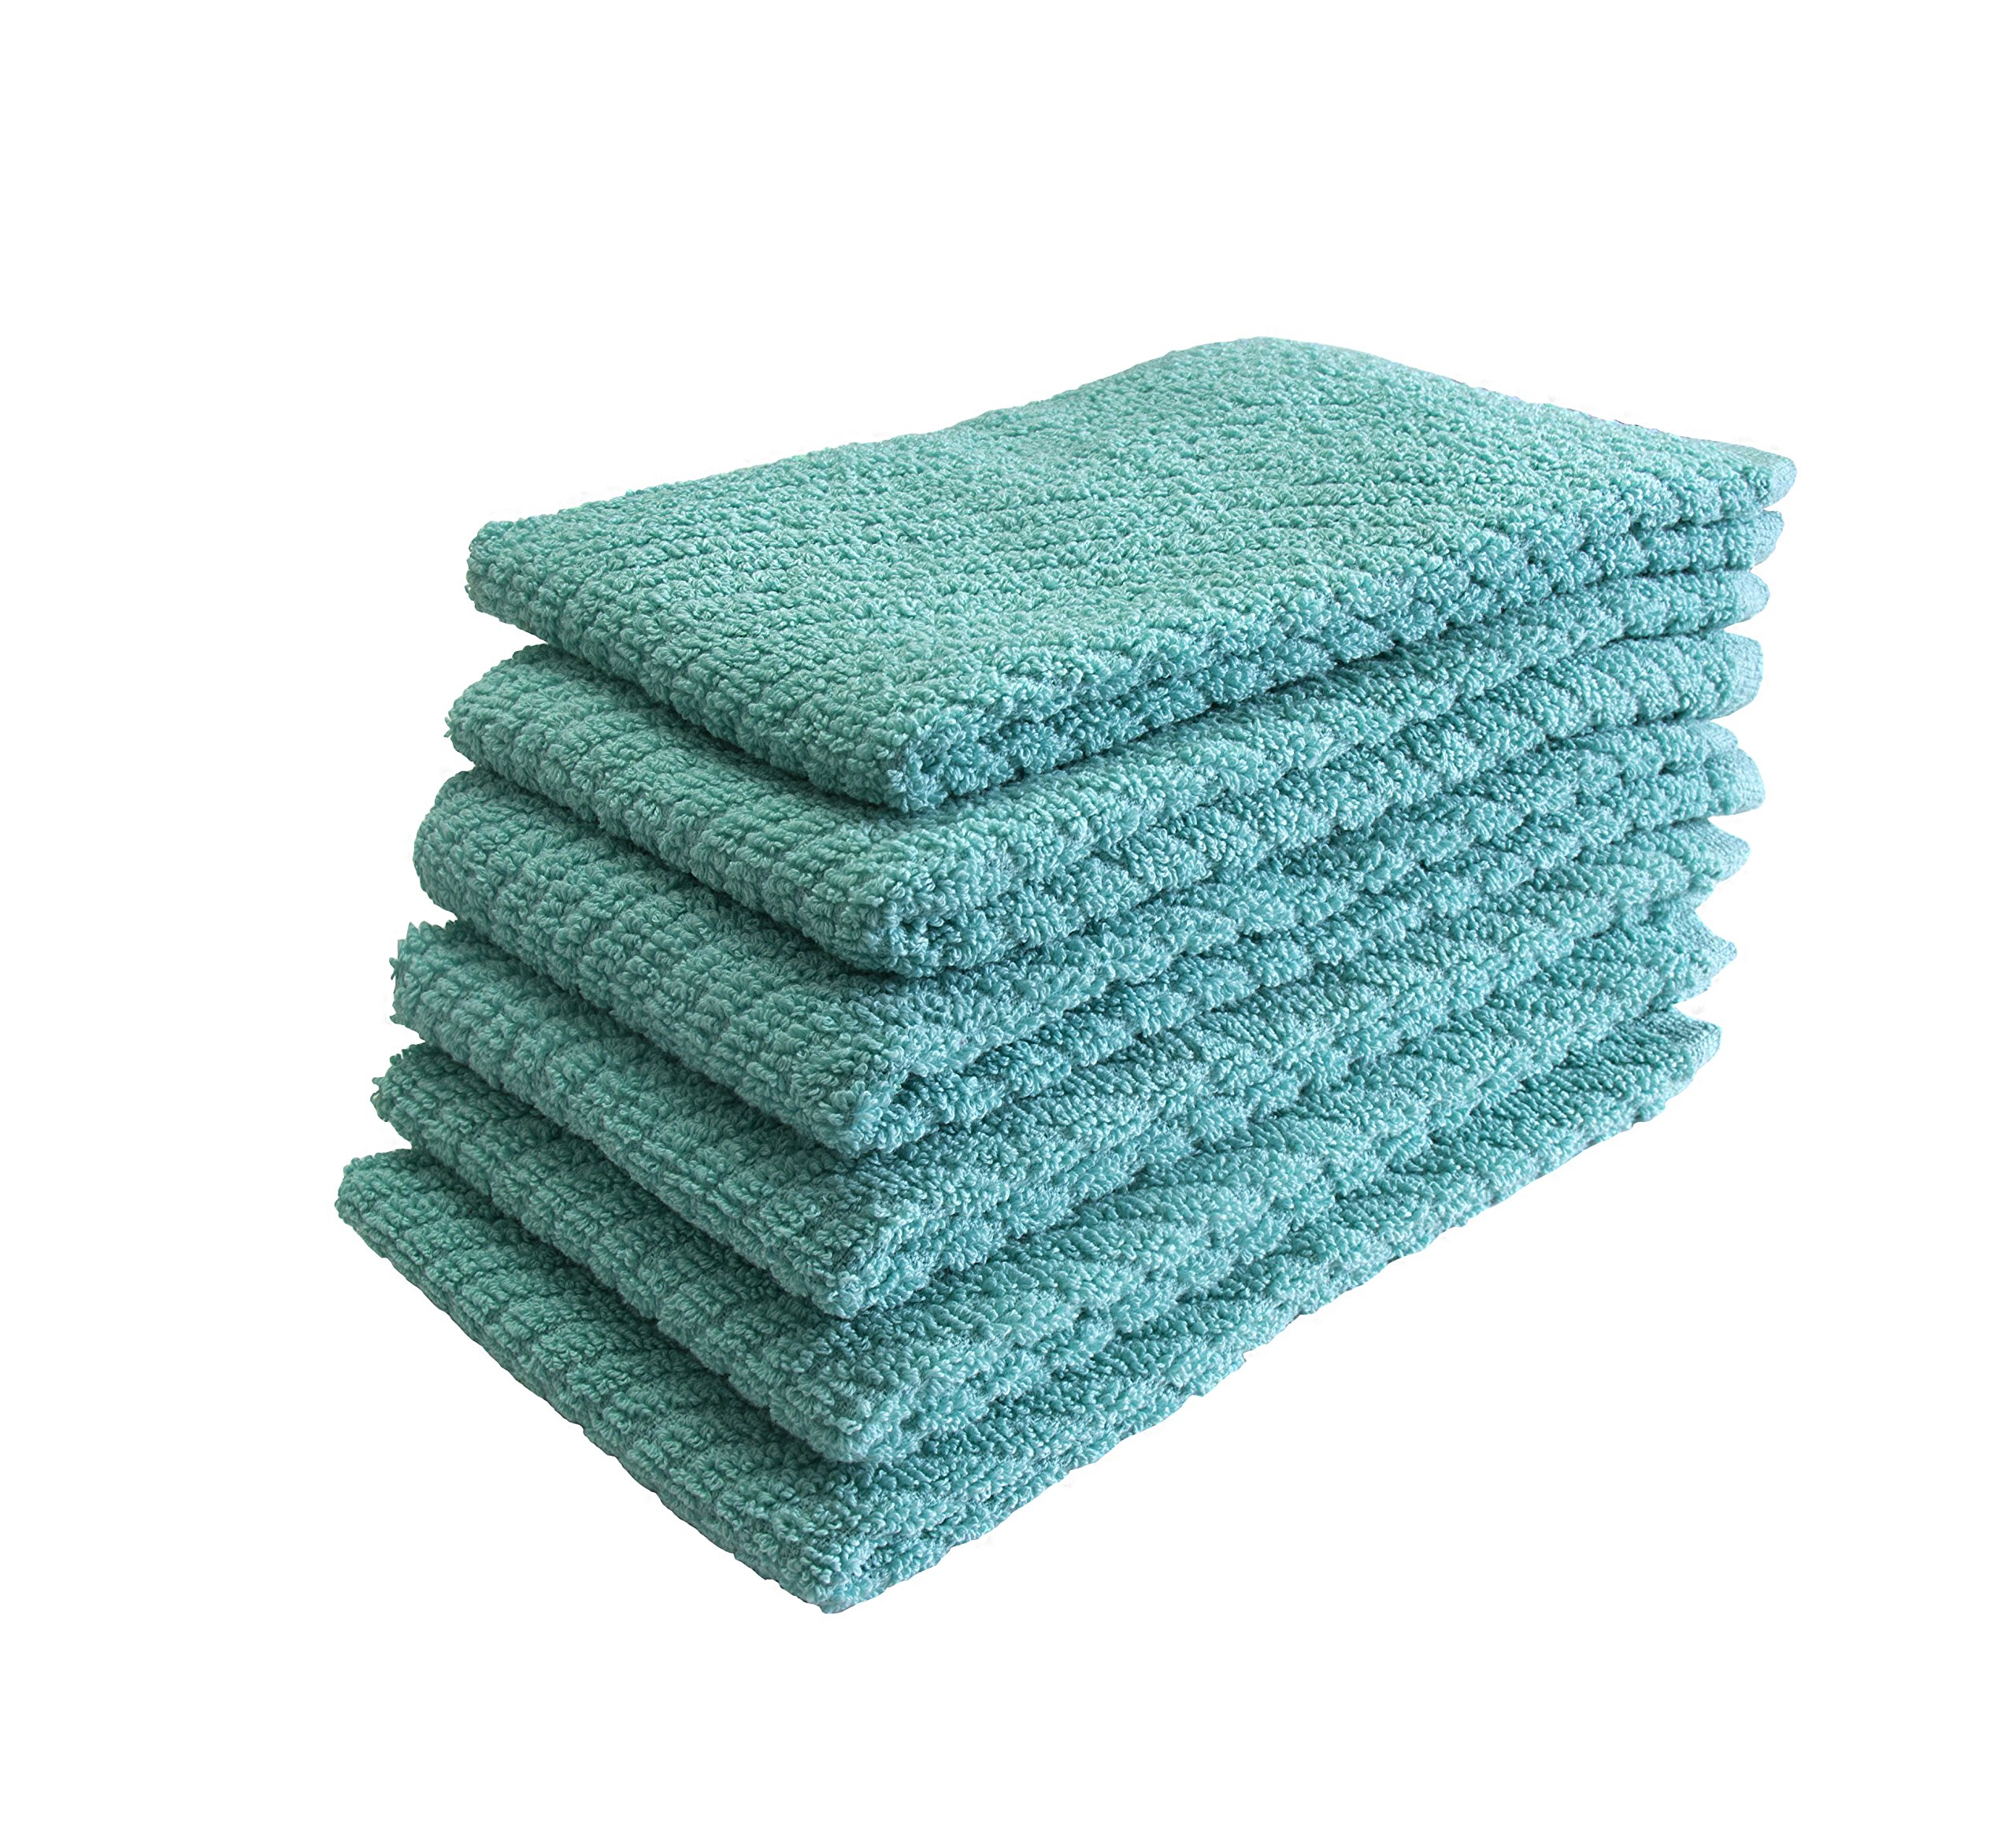 "Bumble Deluxe Barmop Kitchen Towel 6-Pack / 16"" x 19"" / Premium Ultra Absorbent Cotton Hand Towels/Quick Drying Tea Towels/Diagonal Weave Thick 2-Ply/Long Lasting - Aqua by Bumble Towels (Image #2)"